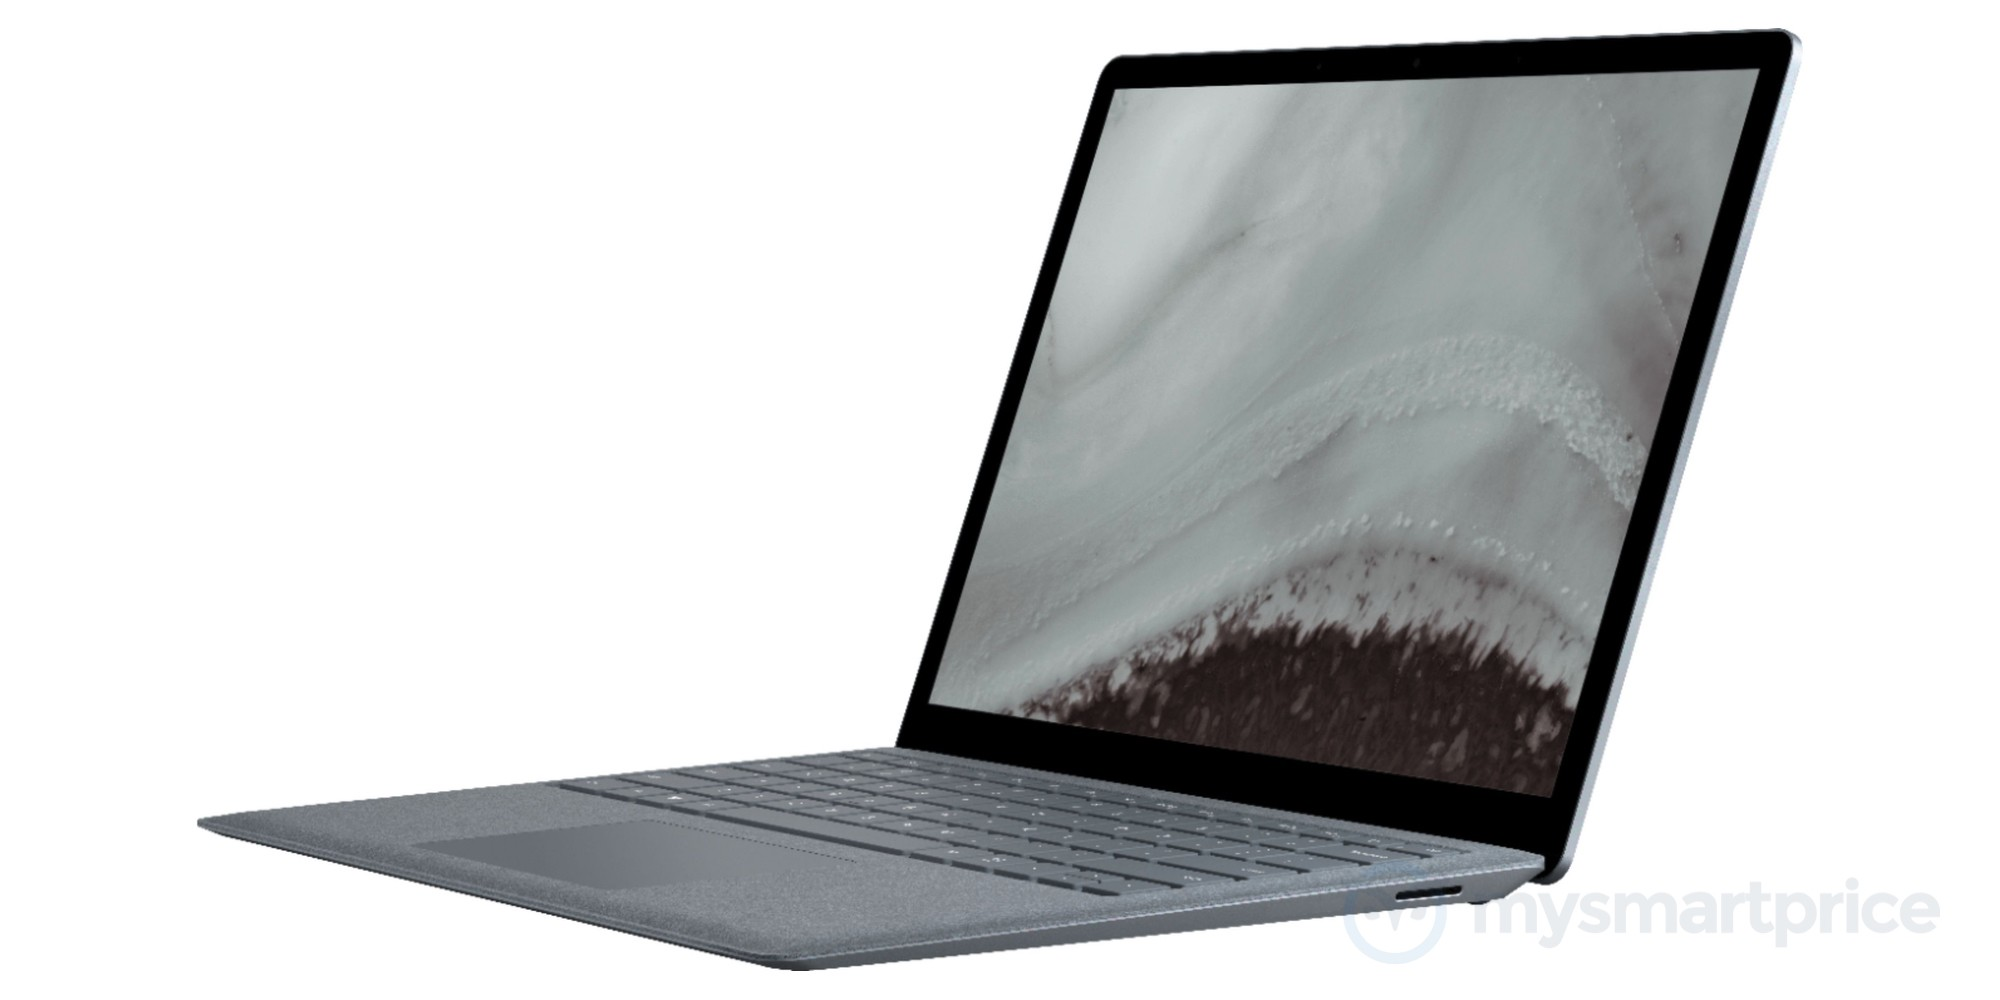 Deal Alert: Microsoft's Surface Laptop 2 is $419 cheaper today